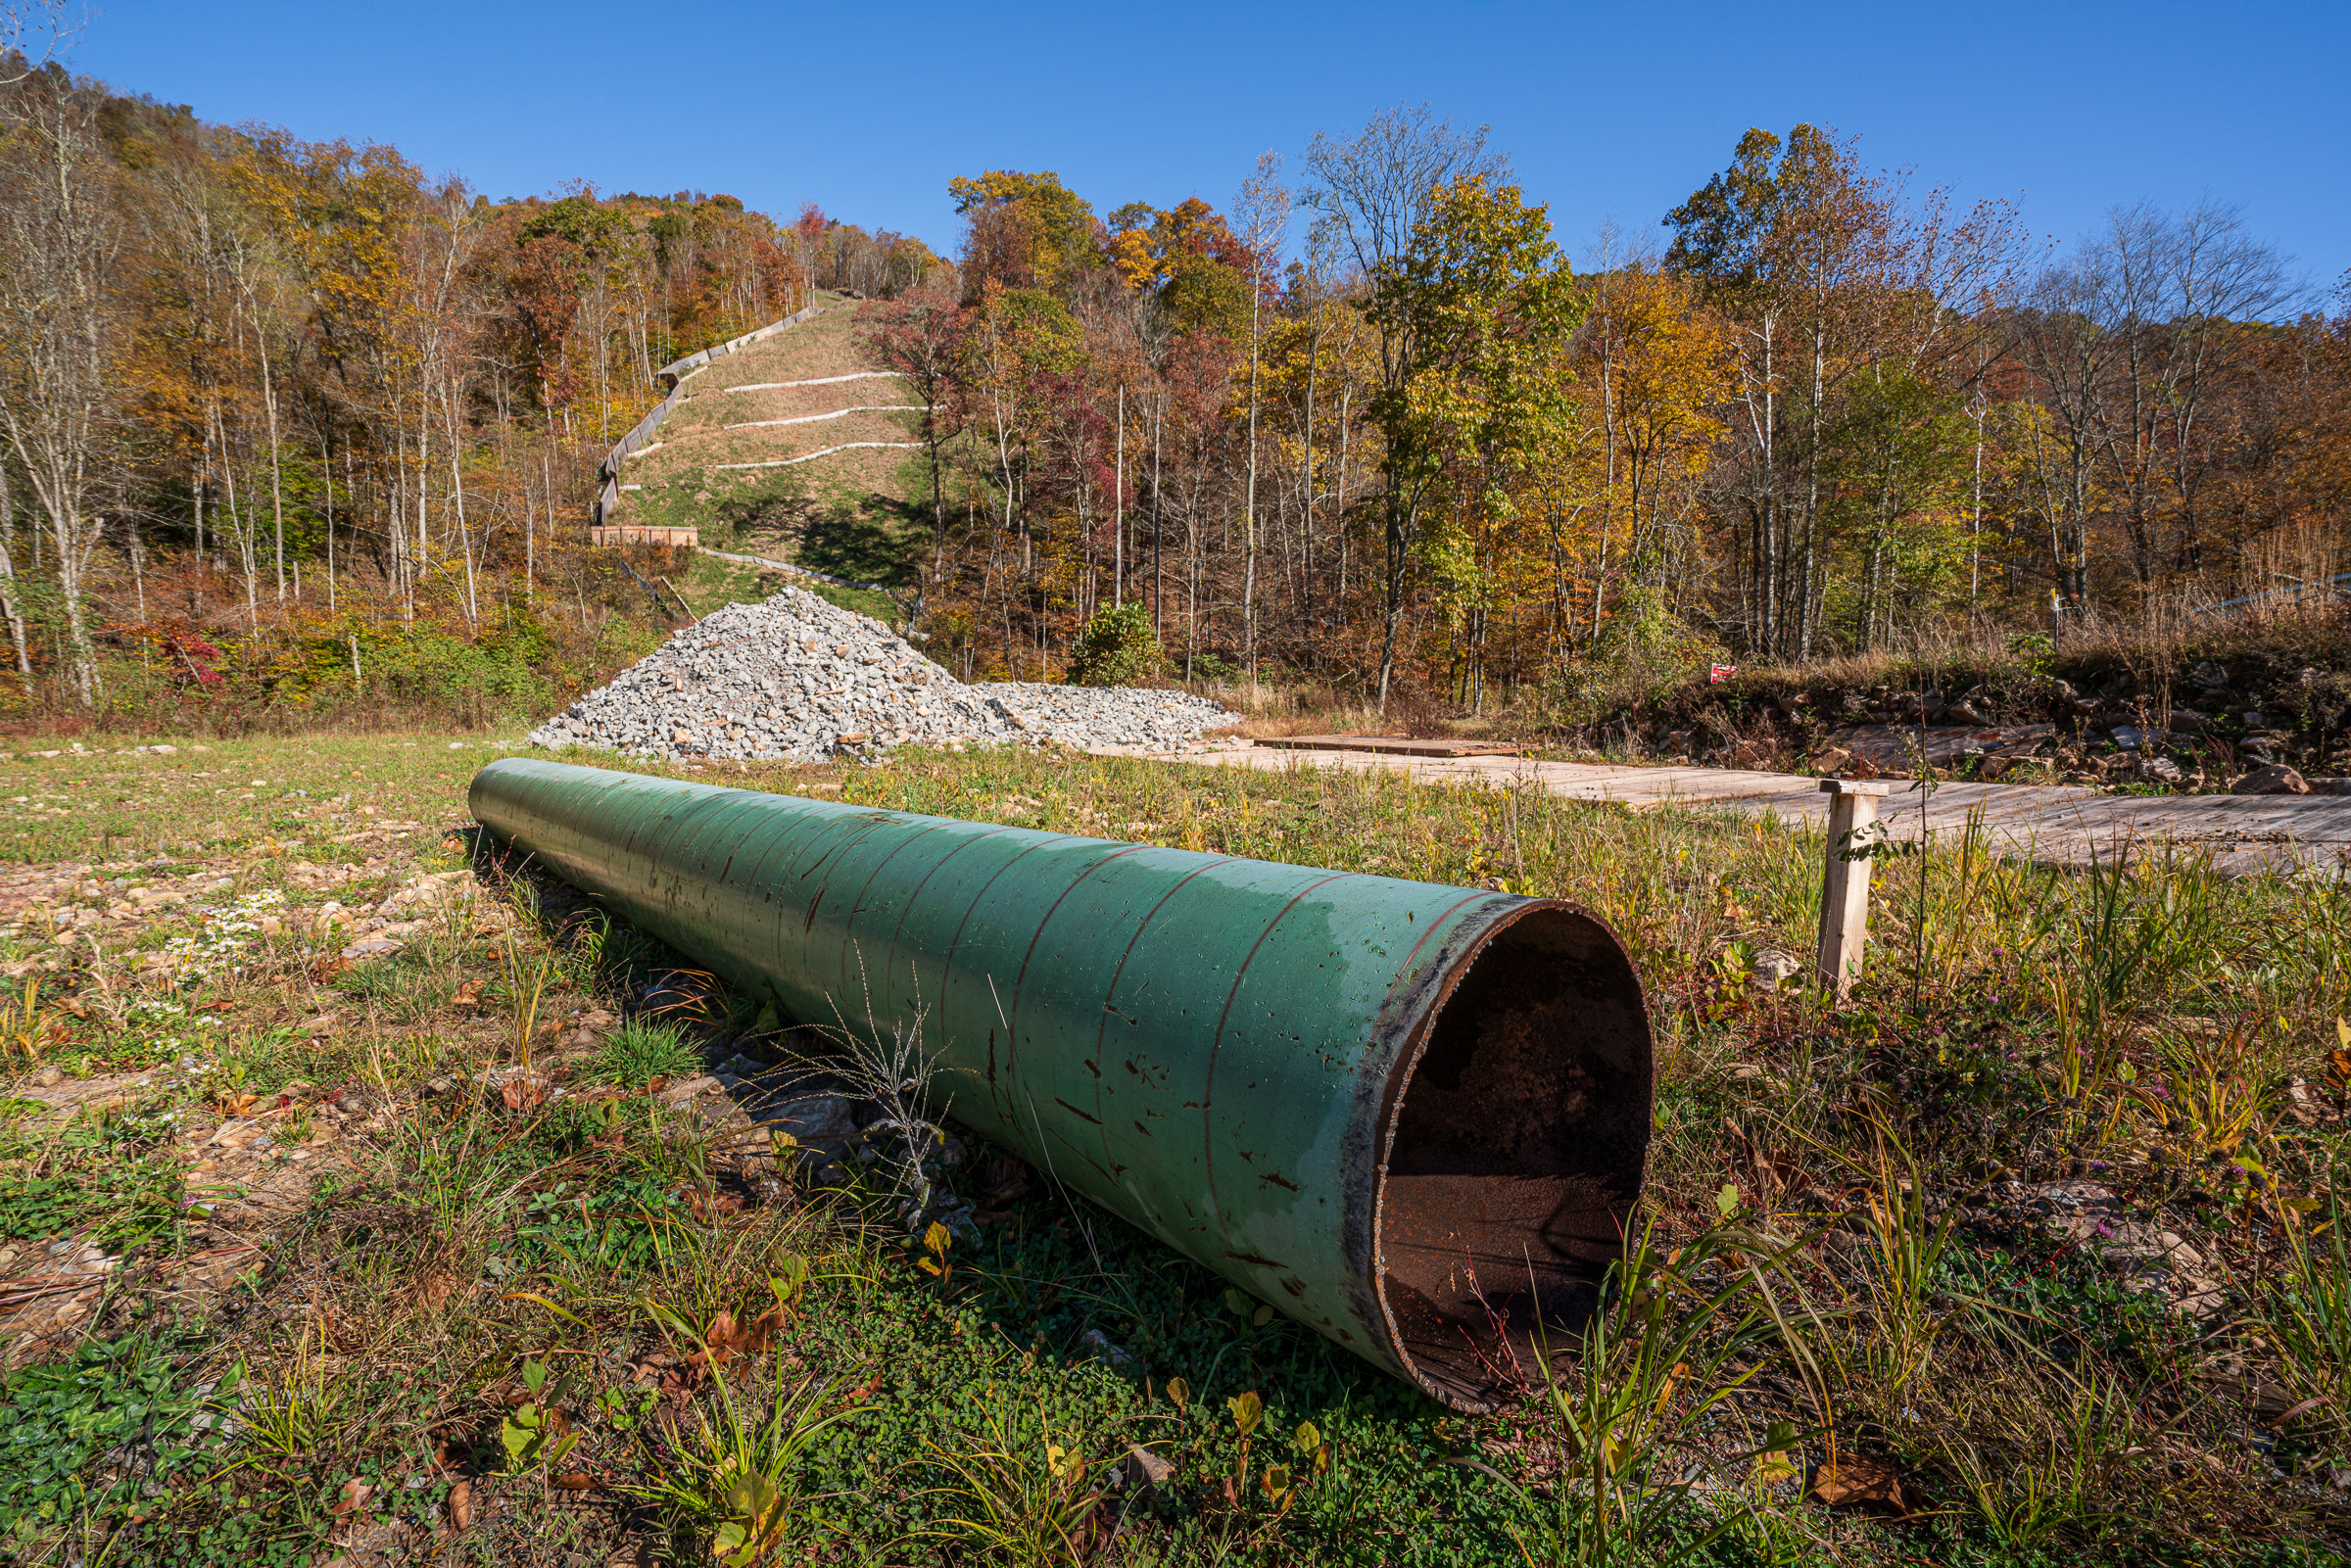 The construction of the pipeline has frequently been placed on hold due to environmental and health concerns. Photograph by Steven David Johnson